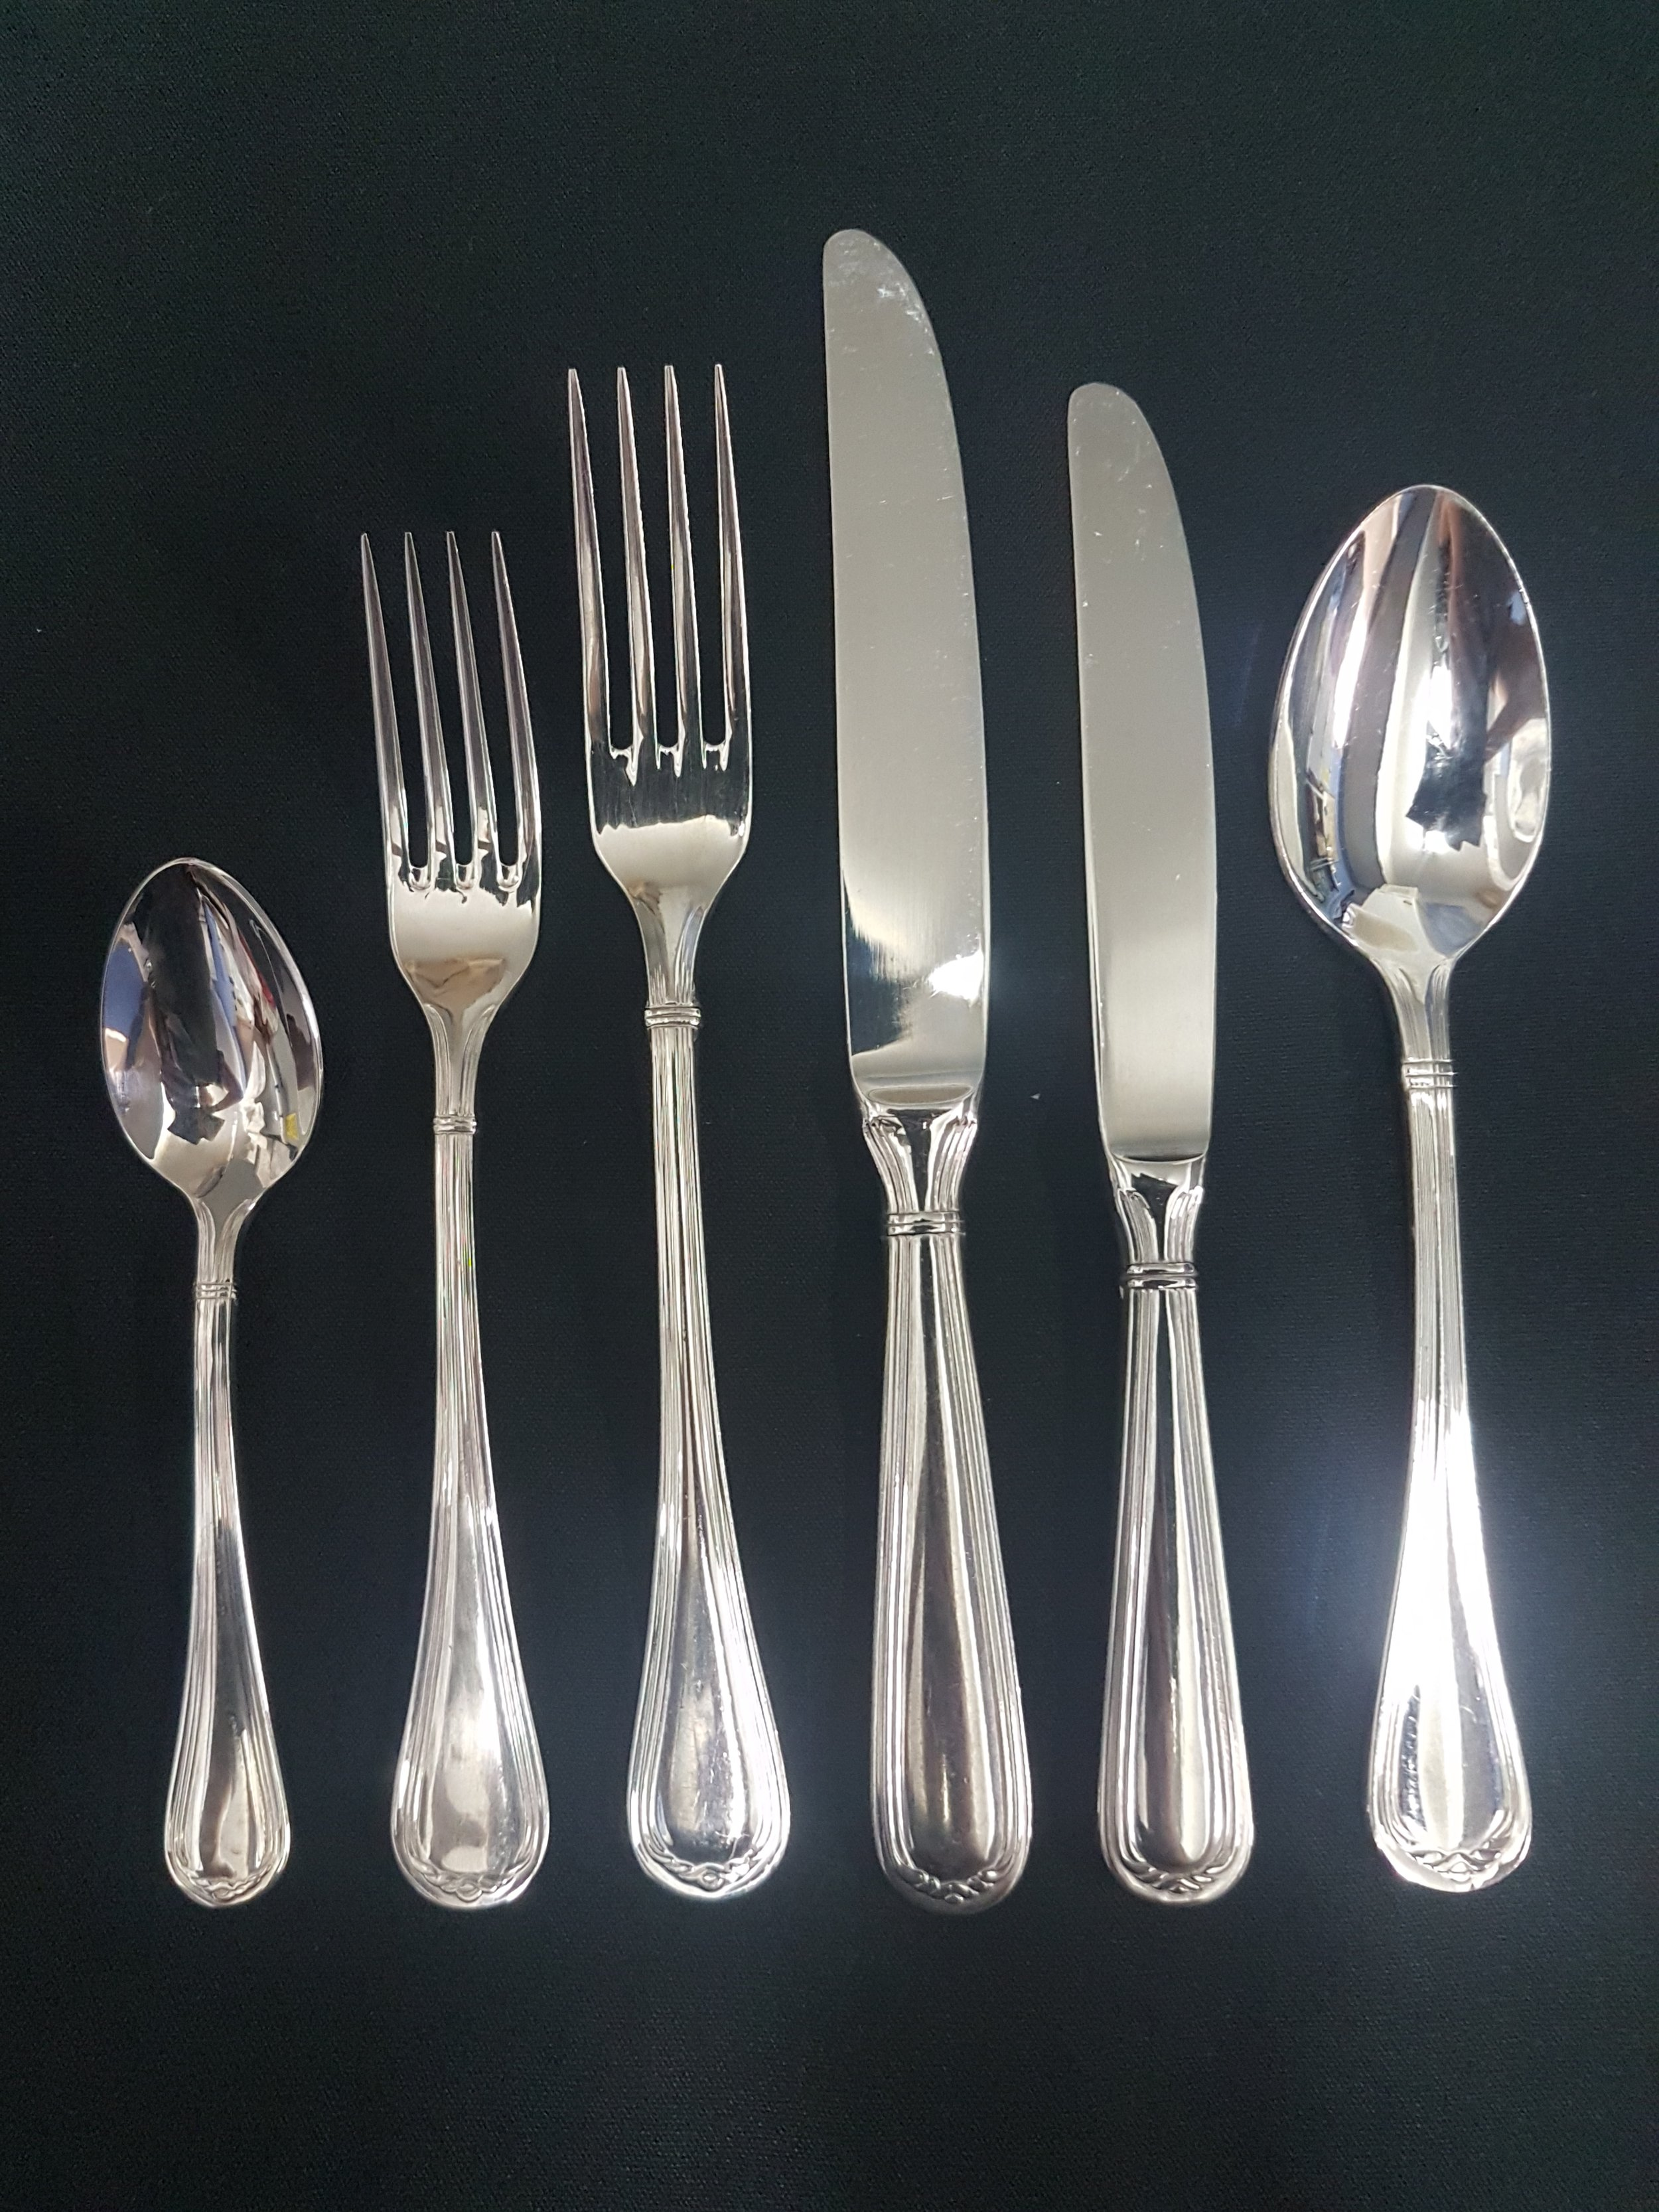 Silver Cutlery range - Teaspoon .66c eaEntree Fork .66c eaDinner Fork .66c eaDinner Knife .66c eaEntree Knife .66c eaDessert Spoon .66c eaNo minimum amounts required for an order.Limited stock of the Silver range.